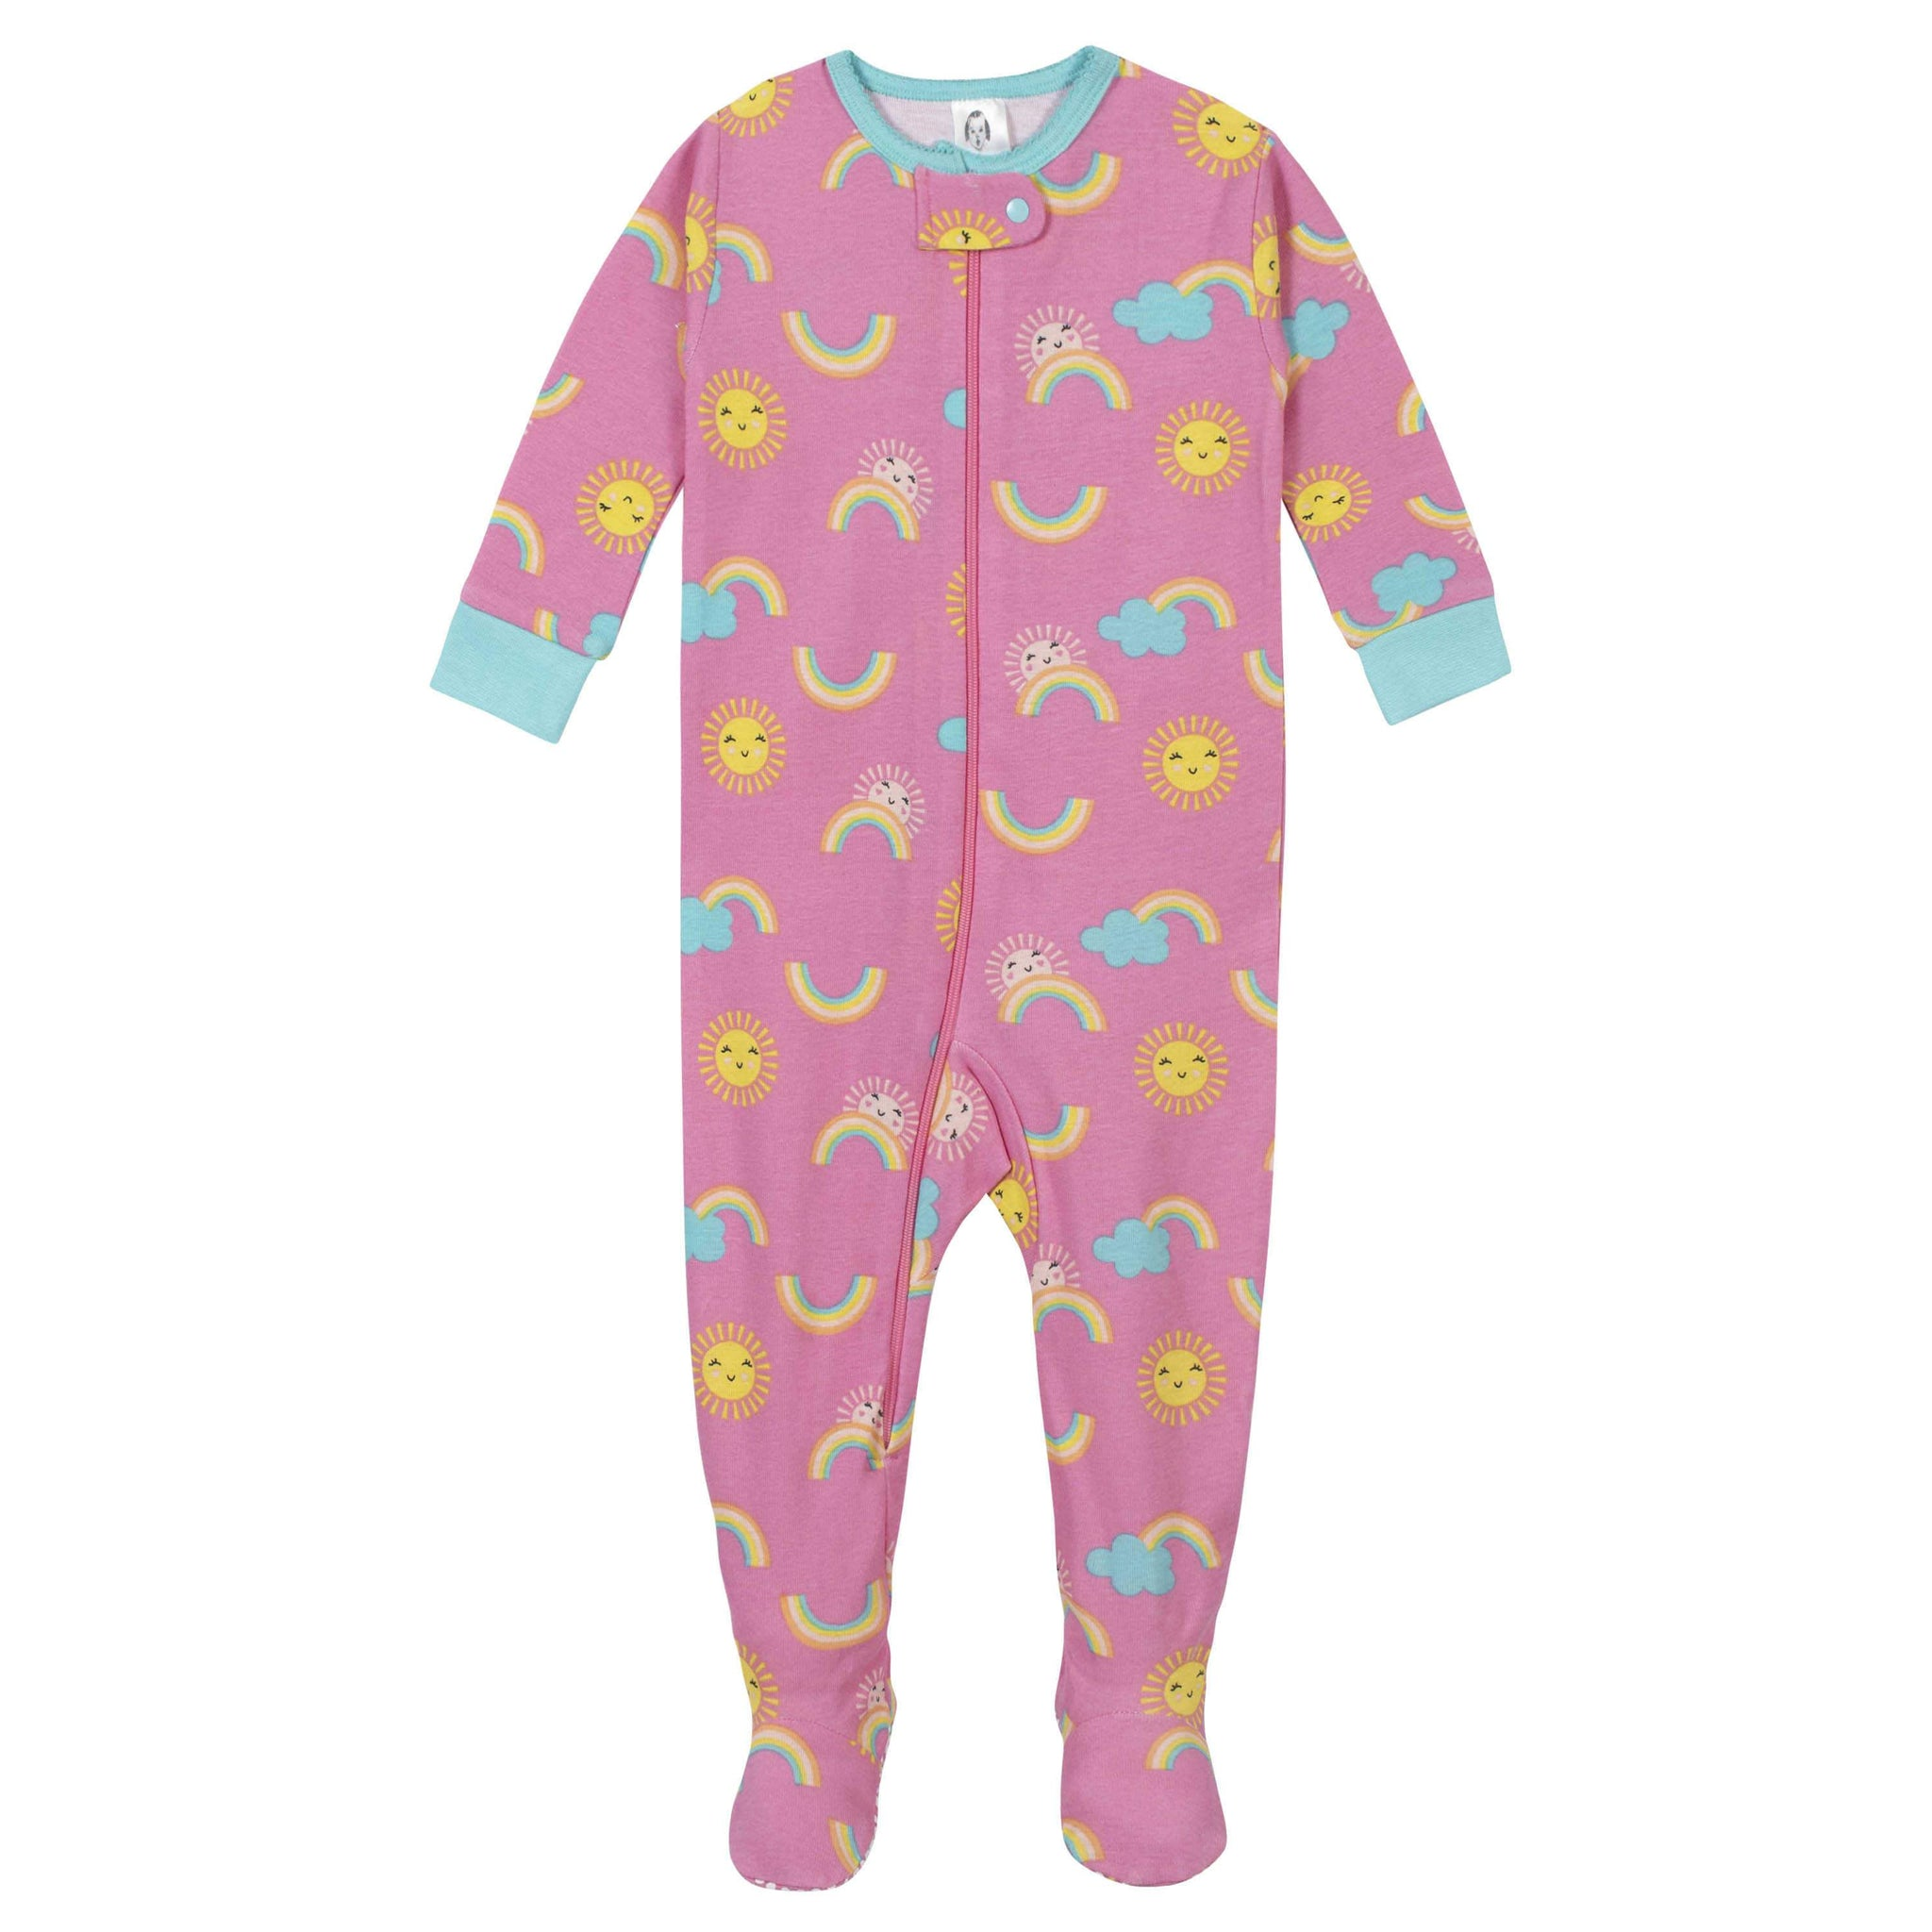 2-Pack Girls Rainbow Footed Pajamas